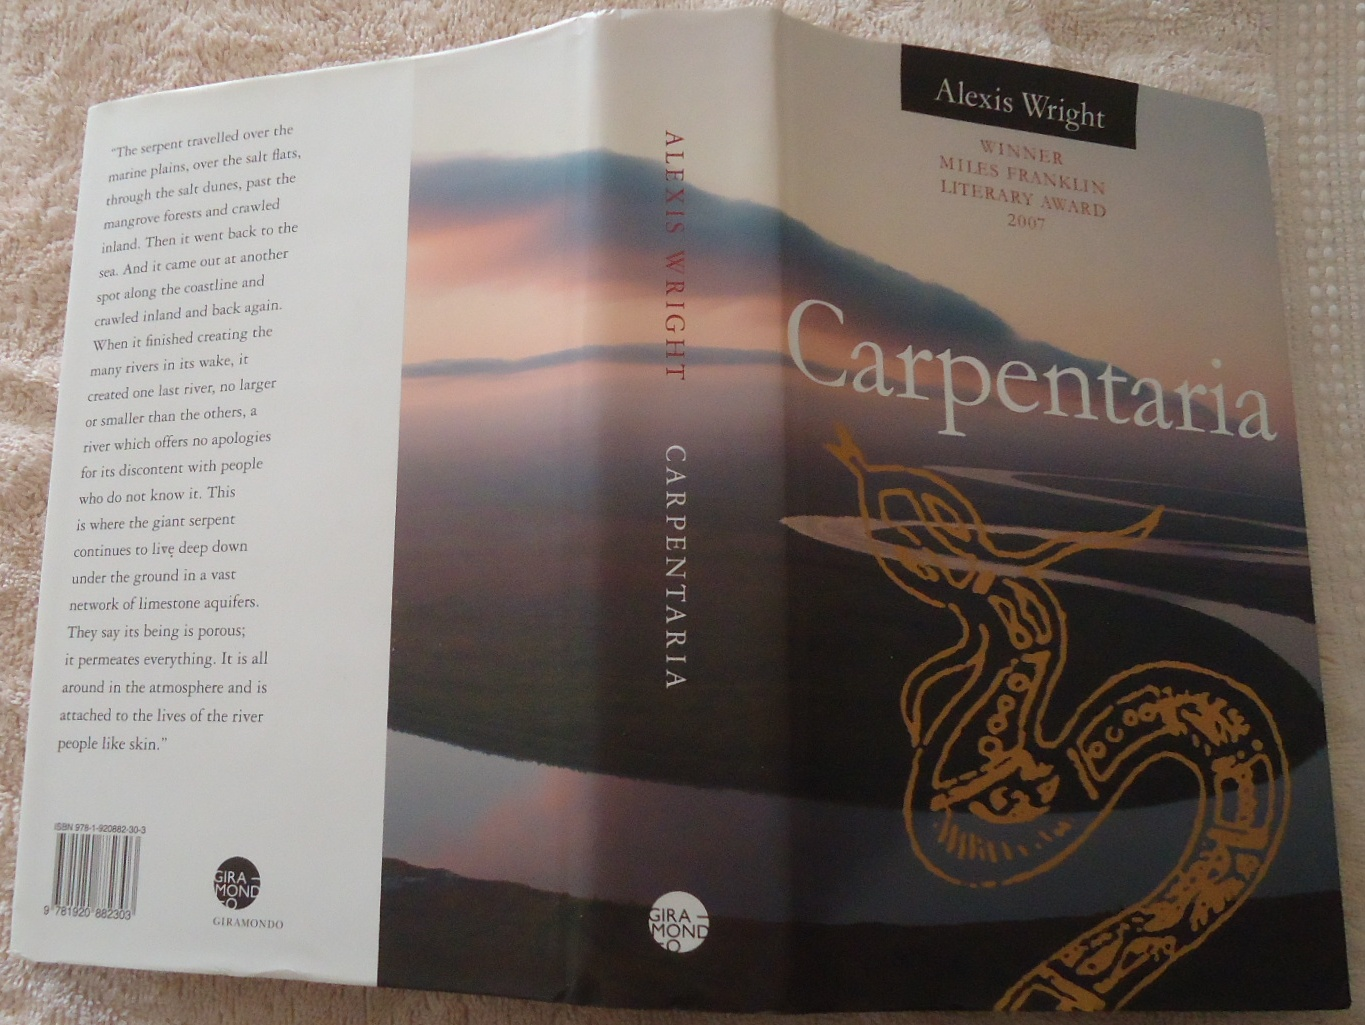 Carpentaria-By-Alexis-Wright-2007-Hardback-Limited-edition-Excellent-condition